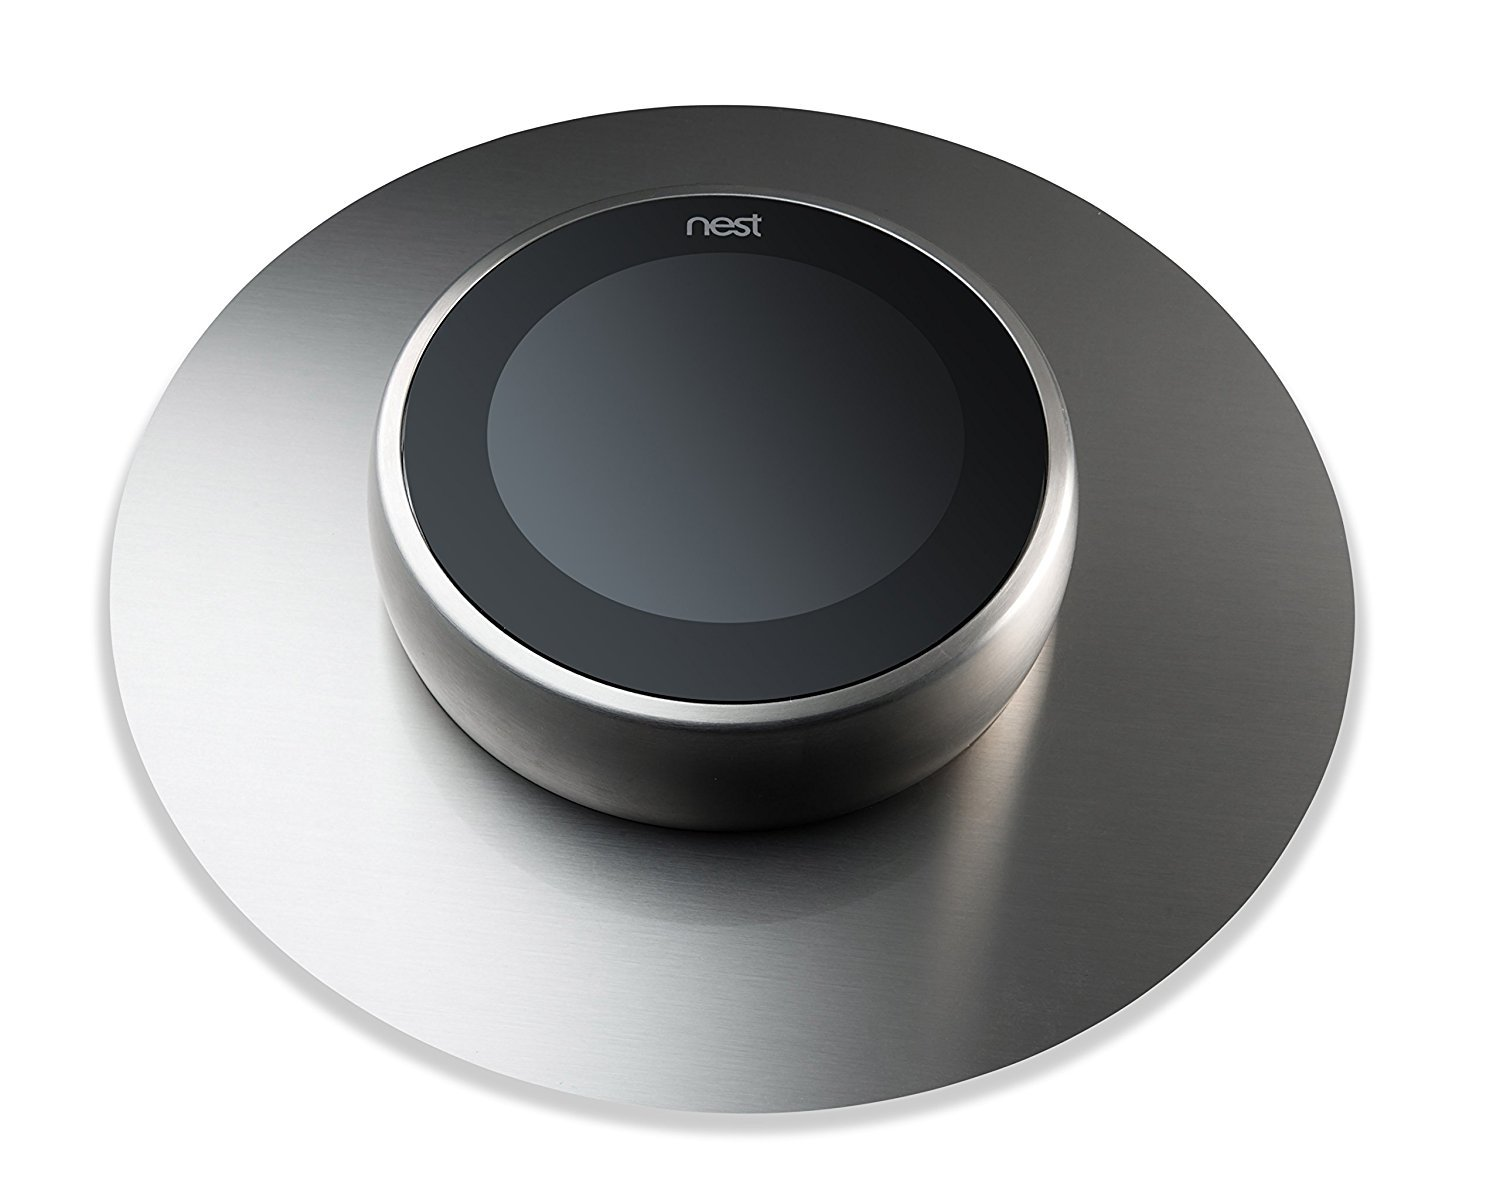 The Nest Décor NEST Thermostat Wall Plate Cover, NOT PLASTIC! HIGHEST QUALITY -- MADE IN THE USA -- Brushed Stainless Steel 6 inch backdrop for all Nest Thermostats. Beautiful & Stylish by